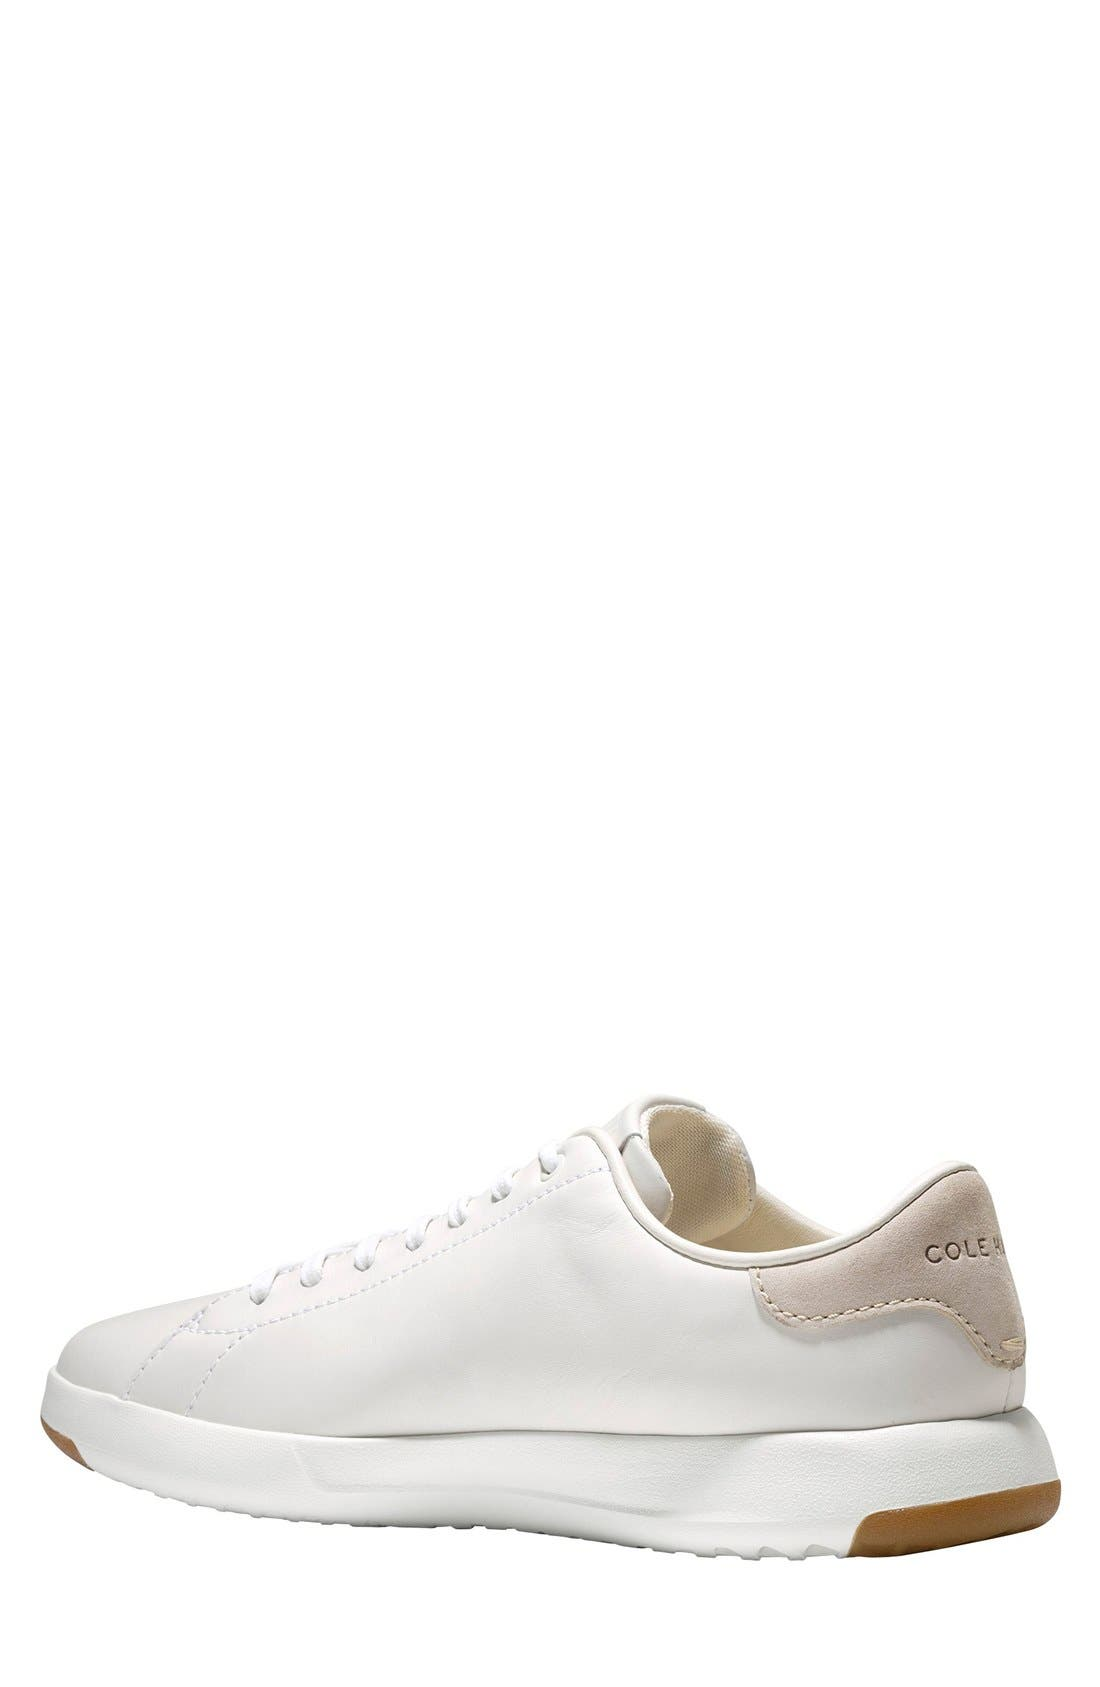 GrandPro Tennis Sneaker,                             Alternate thumbnail 9, color,                             WHITE